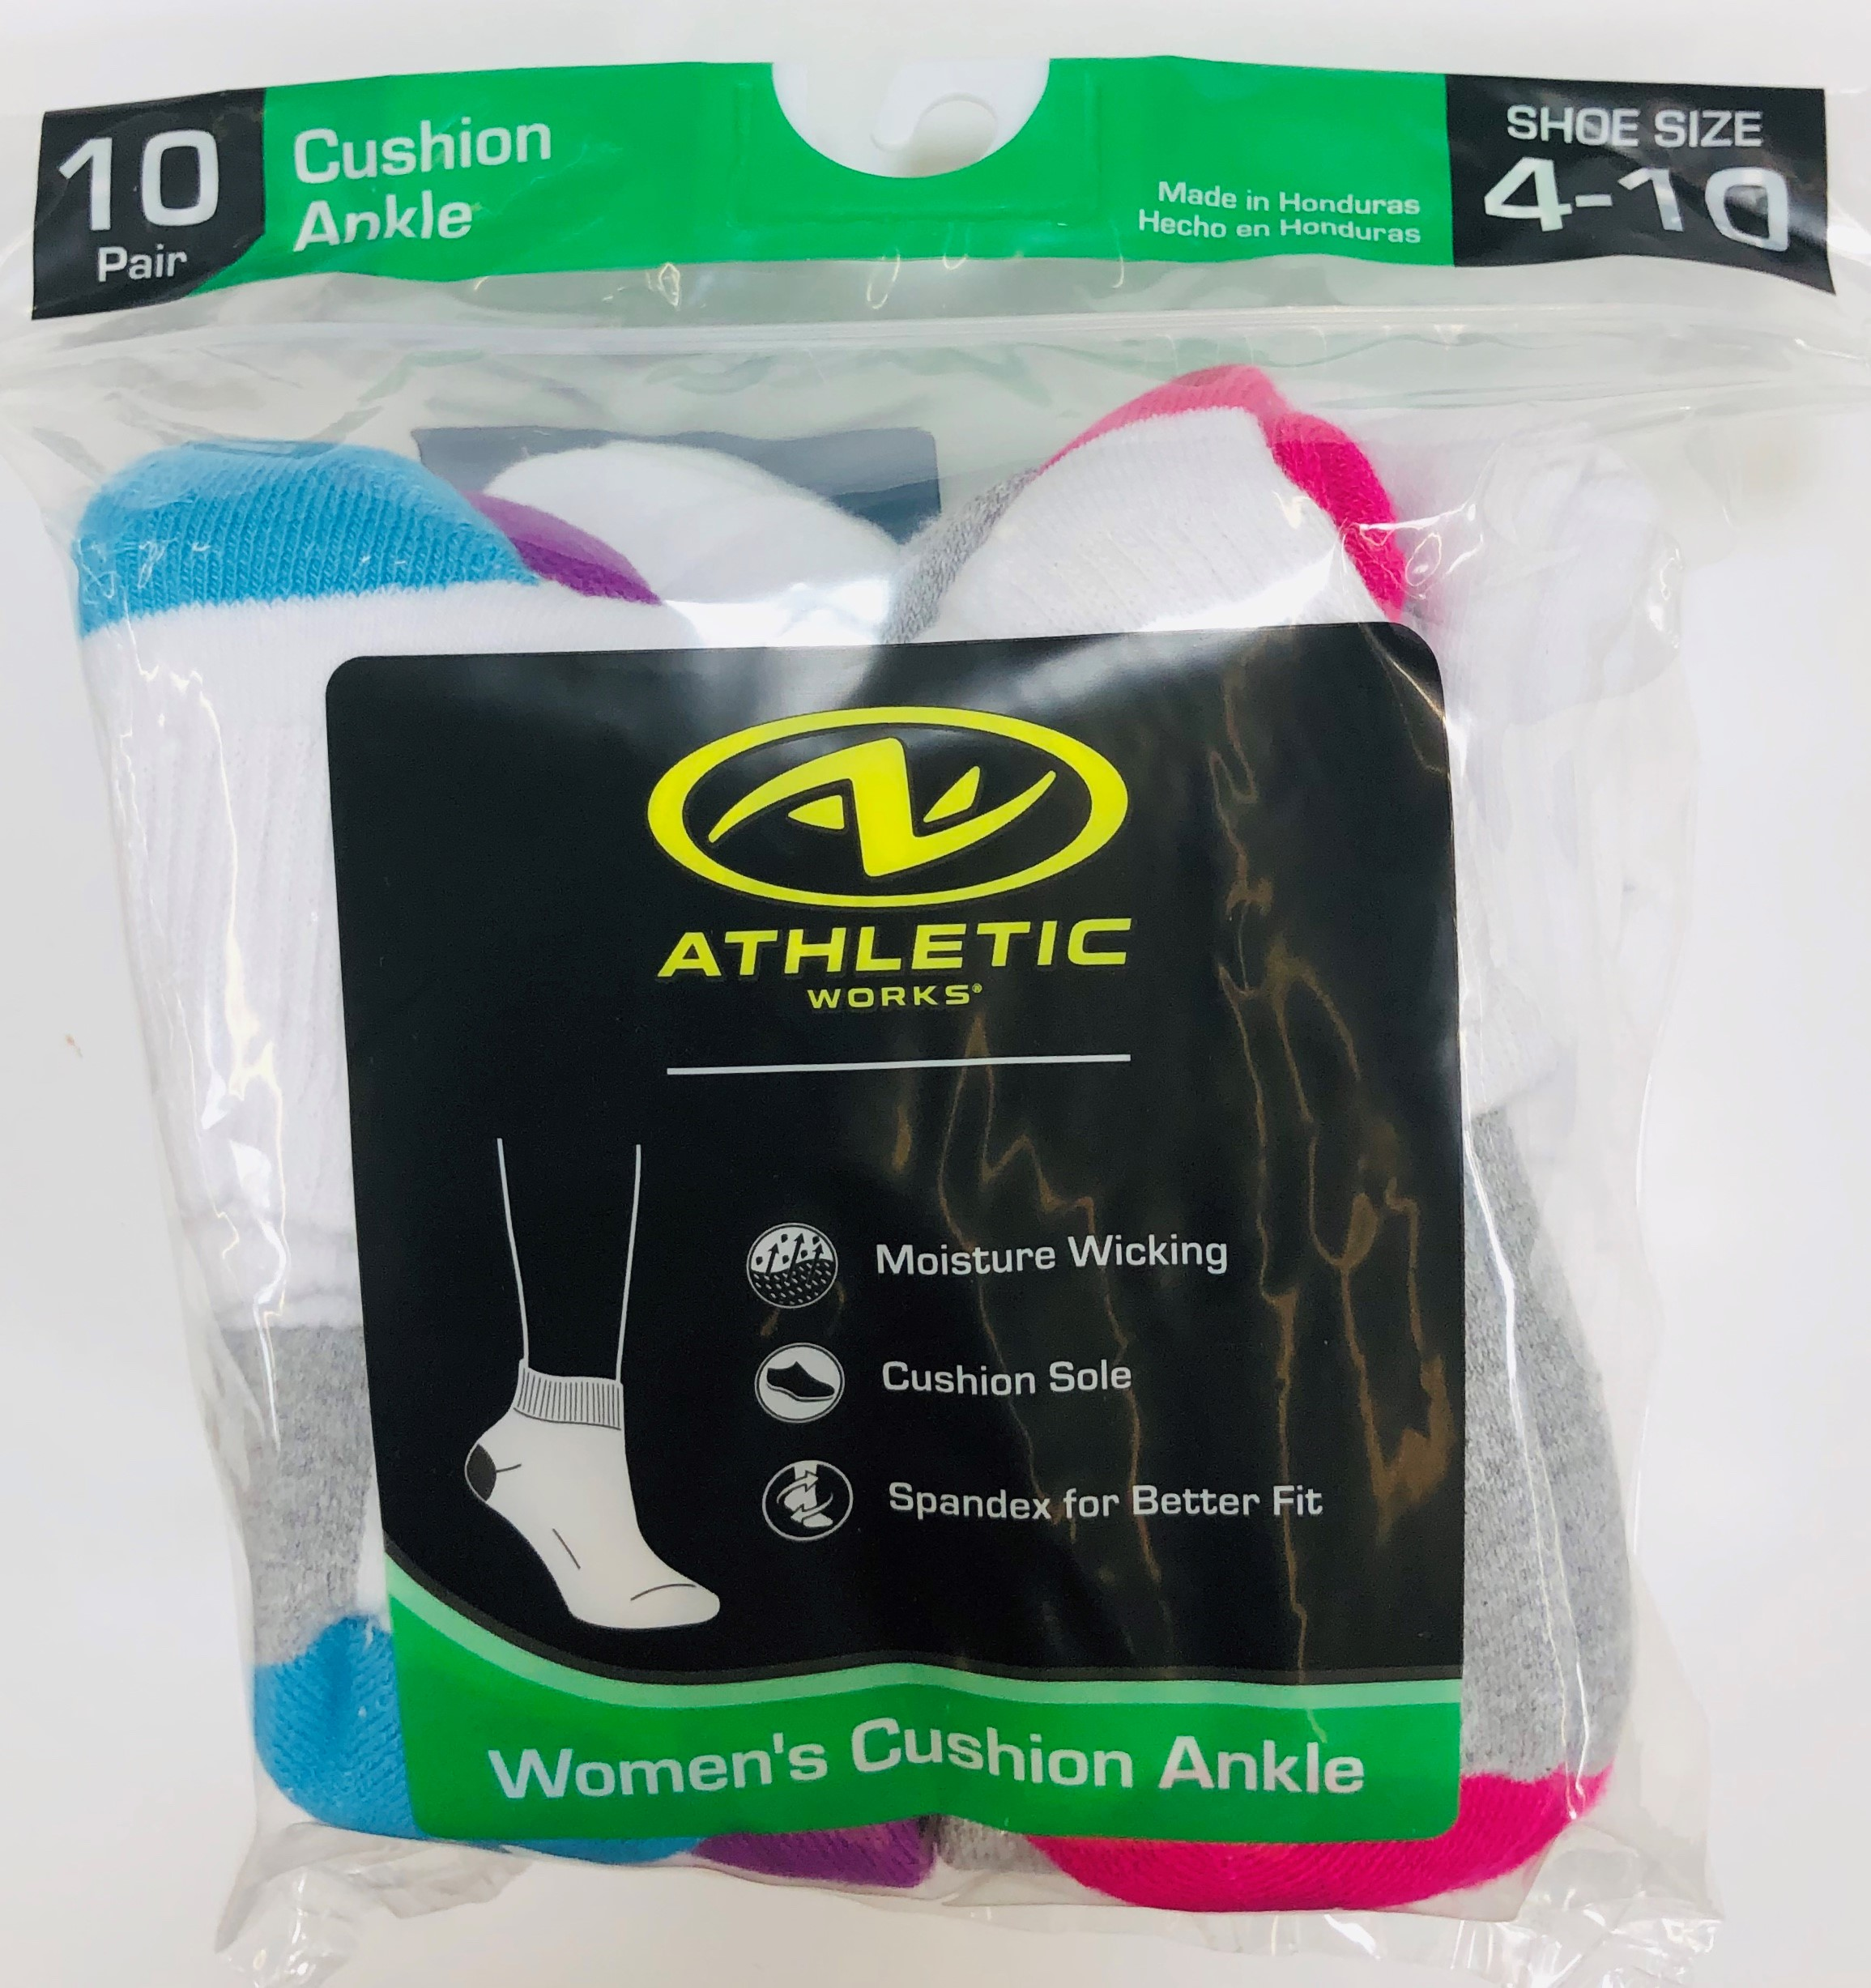 Athletic Works Women's Half Cushion Ankle Socks, 10 Pairs